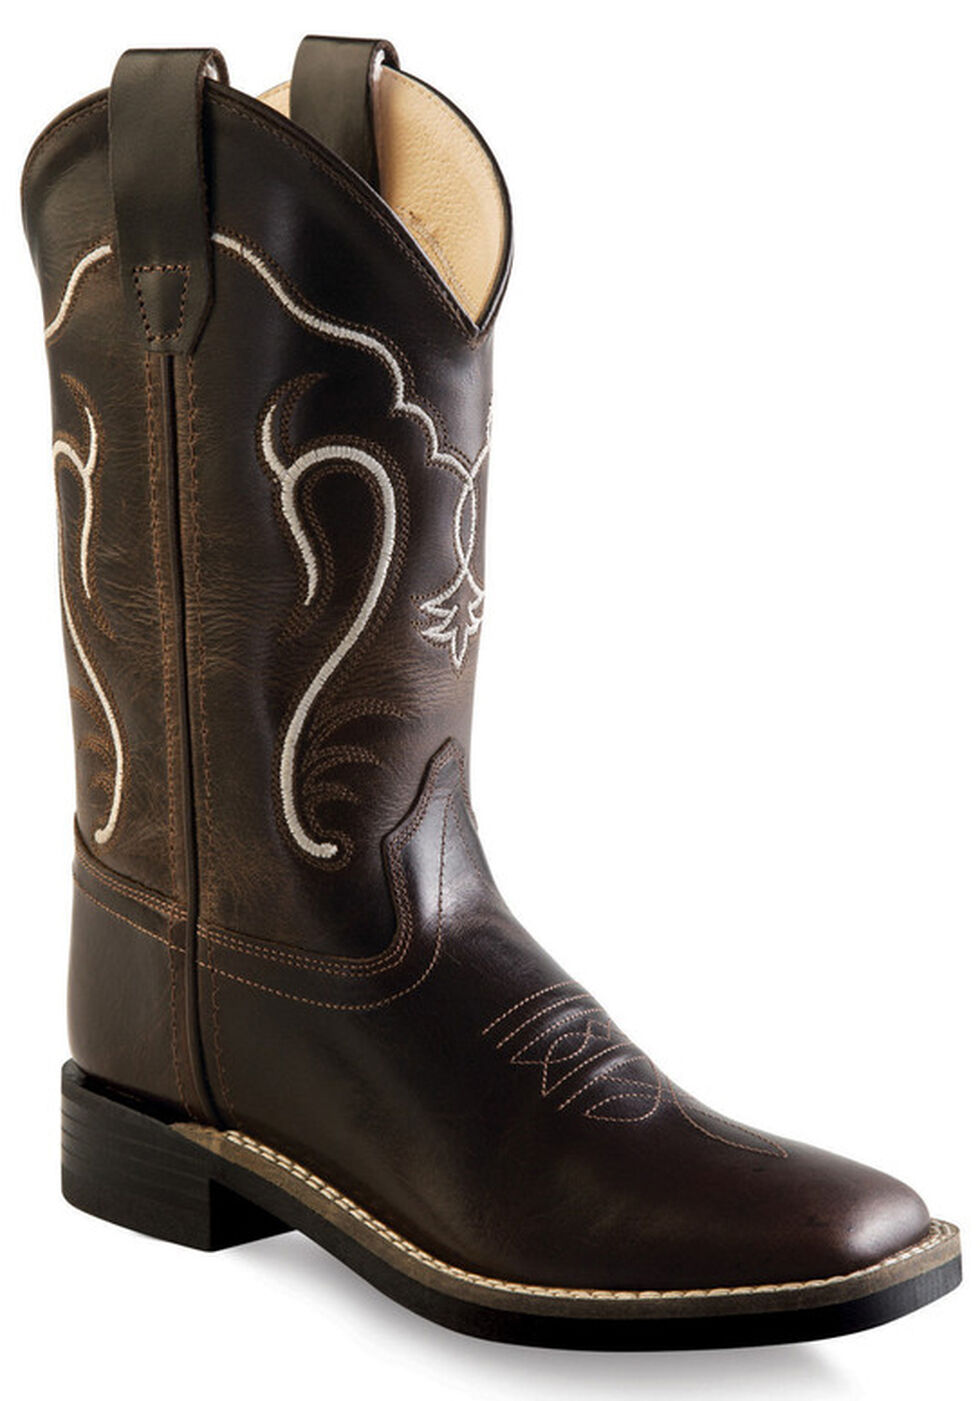 Old West Boys' Distressed Brown Cowboy Boots - Square Toe , Brown, hi-res